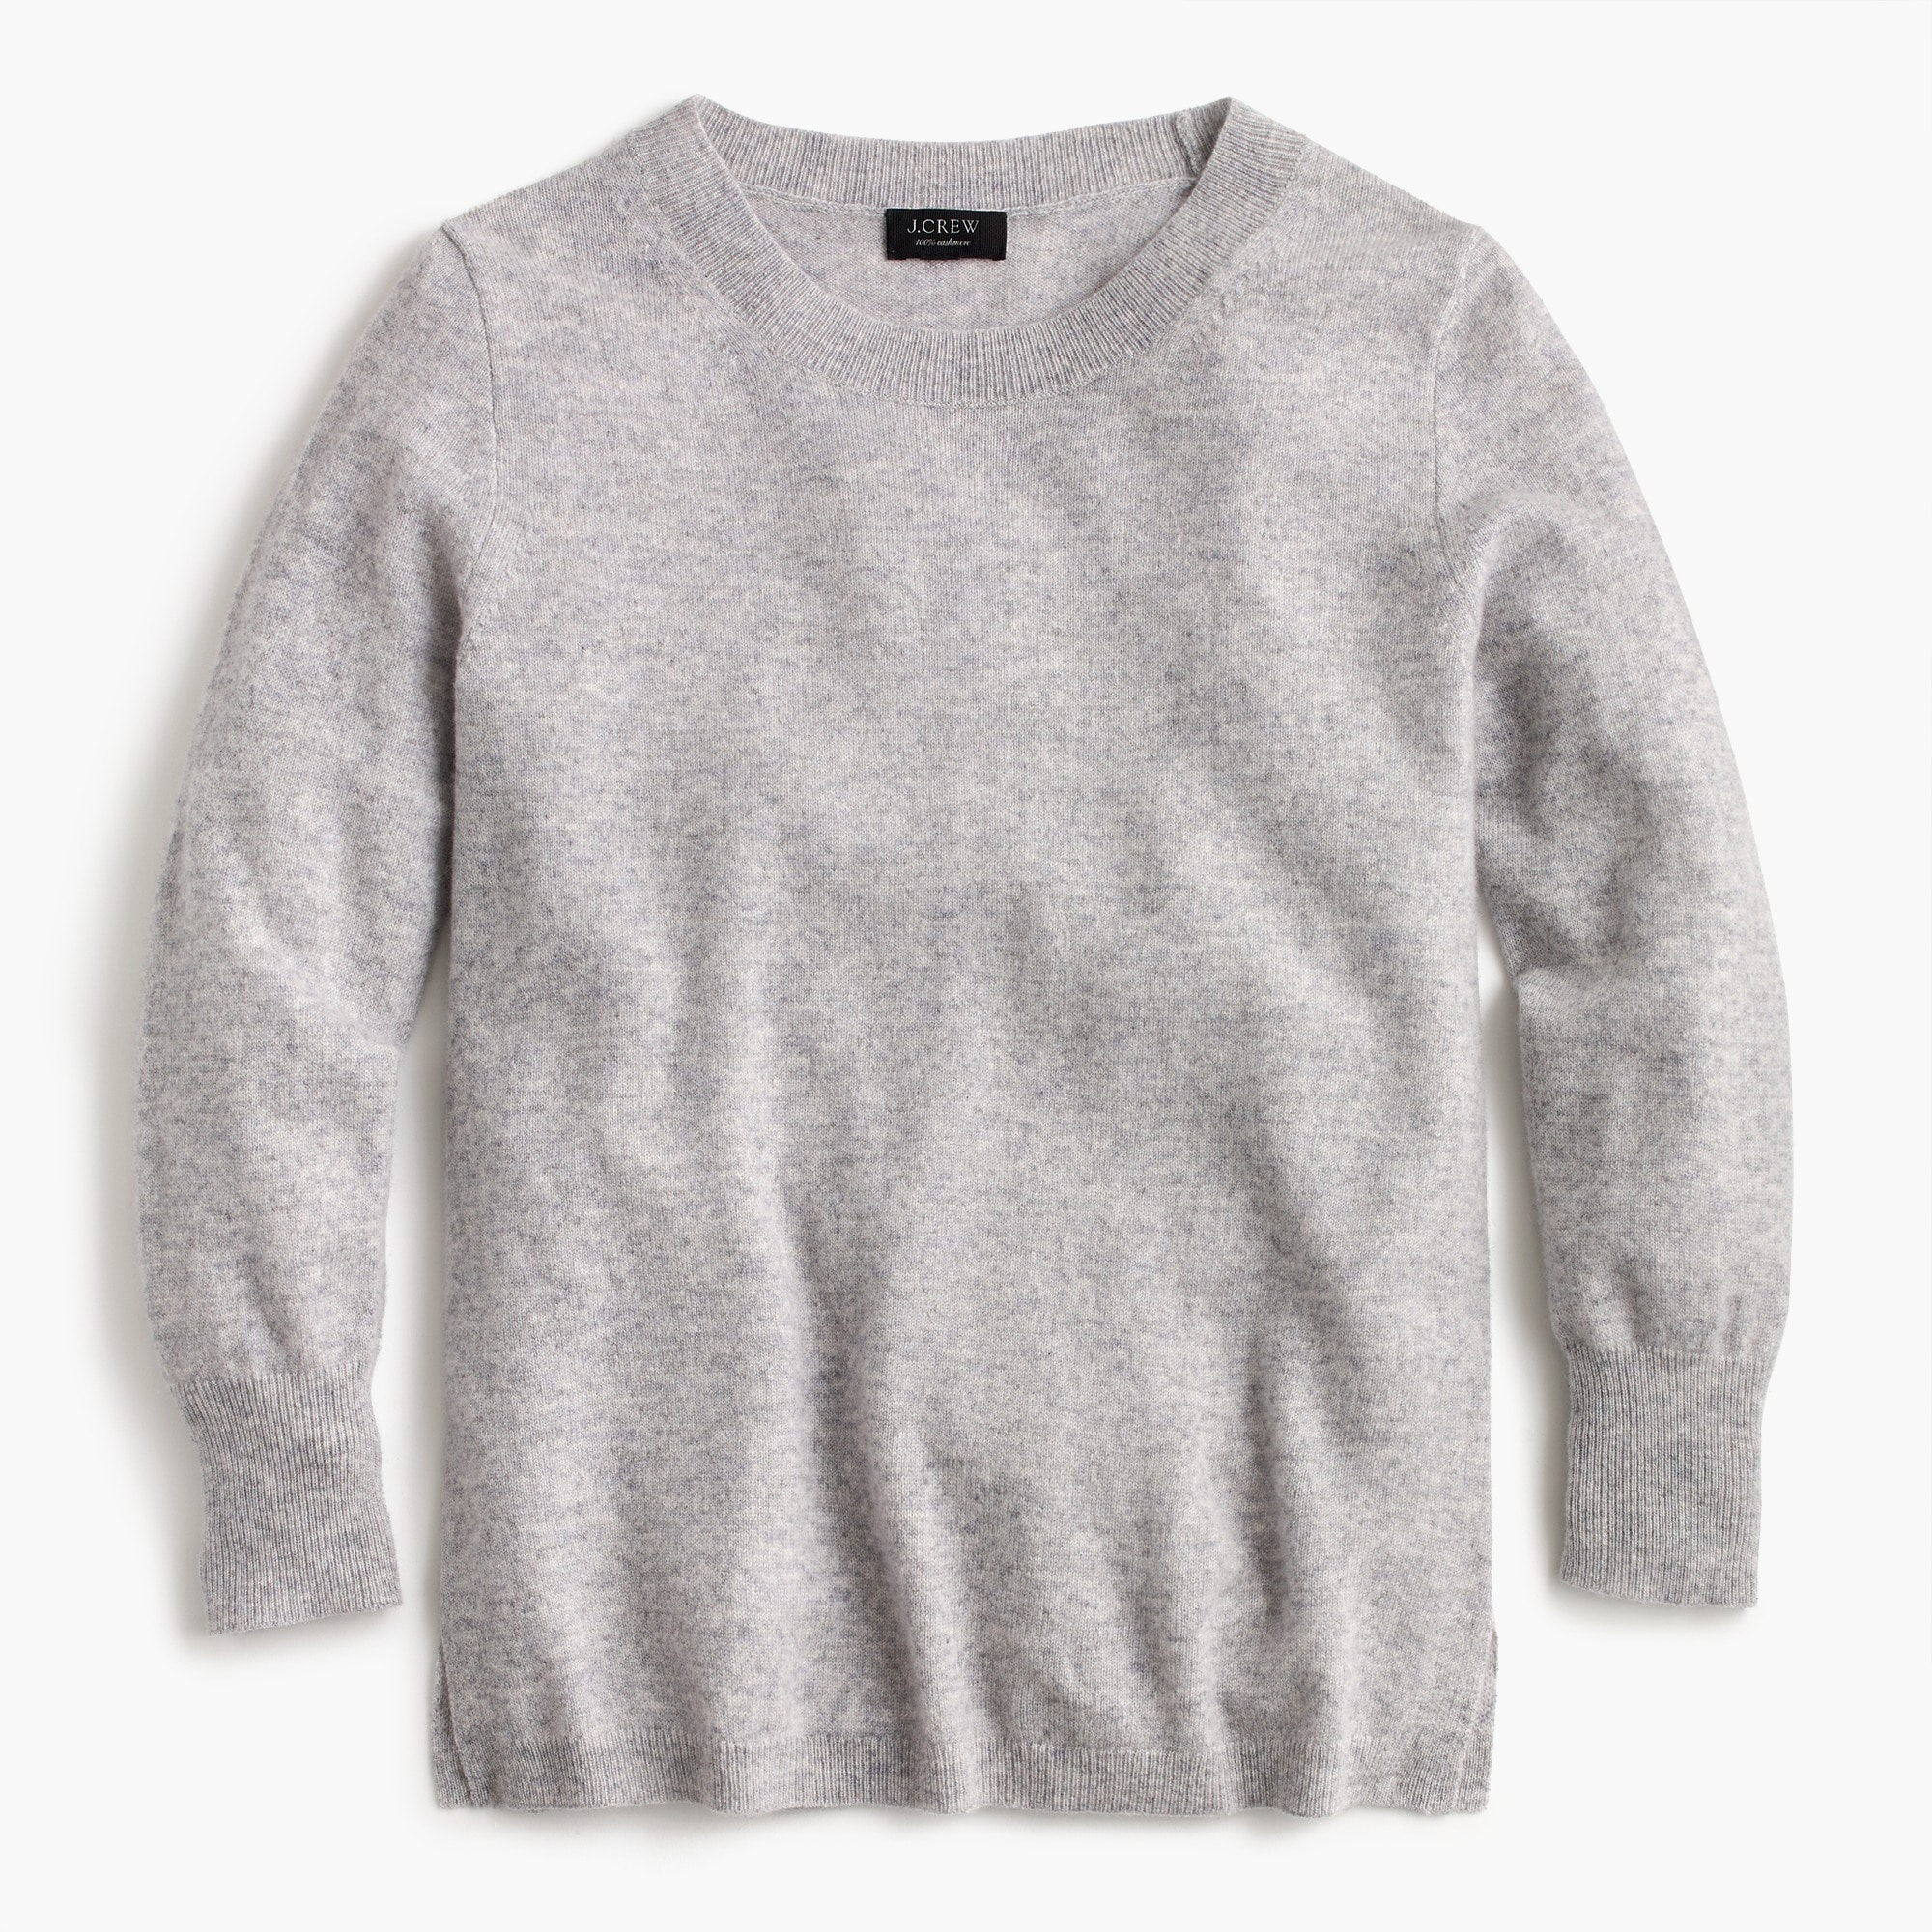 Three-quarter sleeve everyday cashmere crewneck sweater